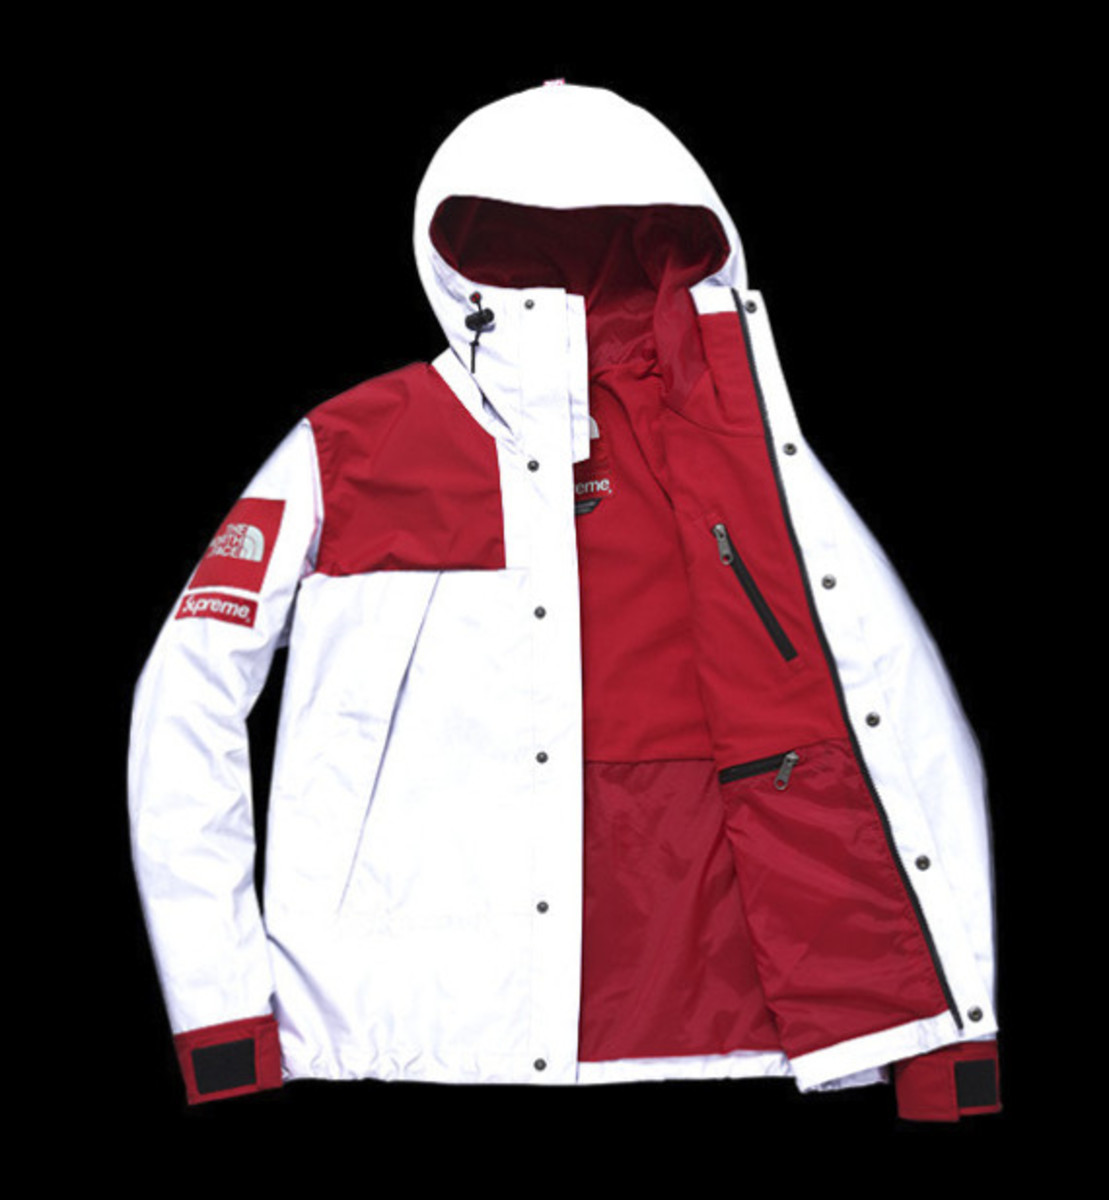 the-north-face-supreme-3m-refelctive-collection-mountain-jacket-07